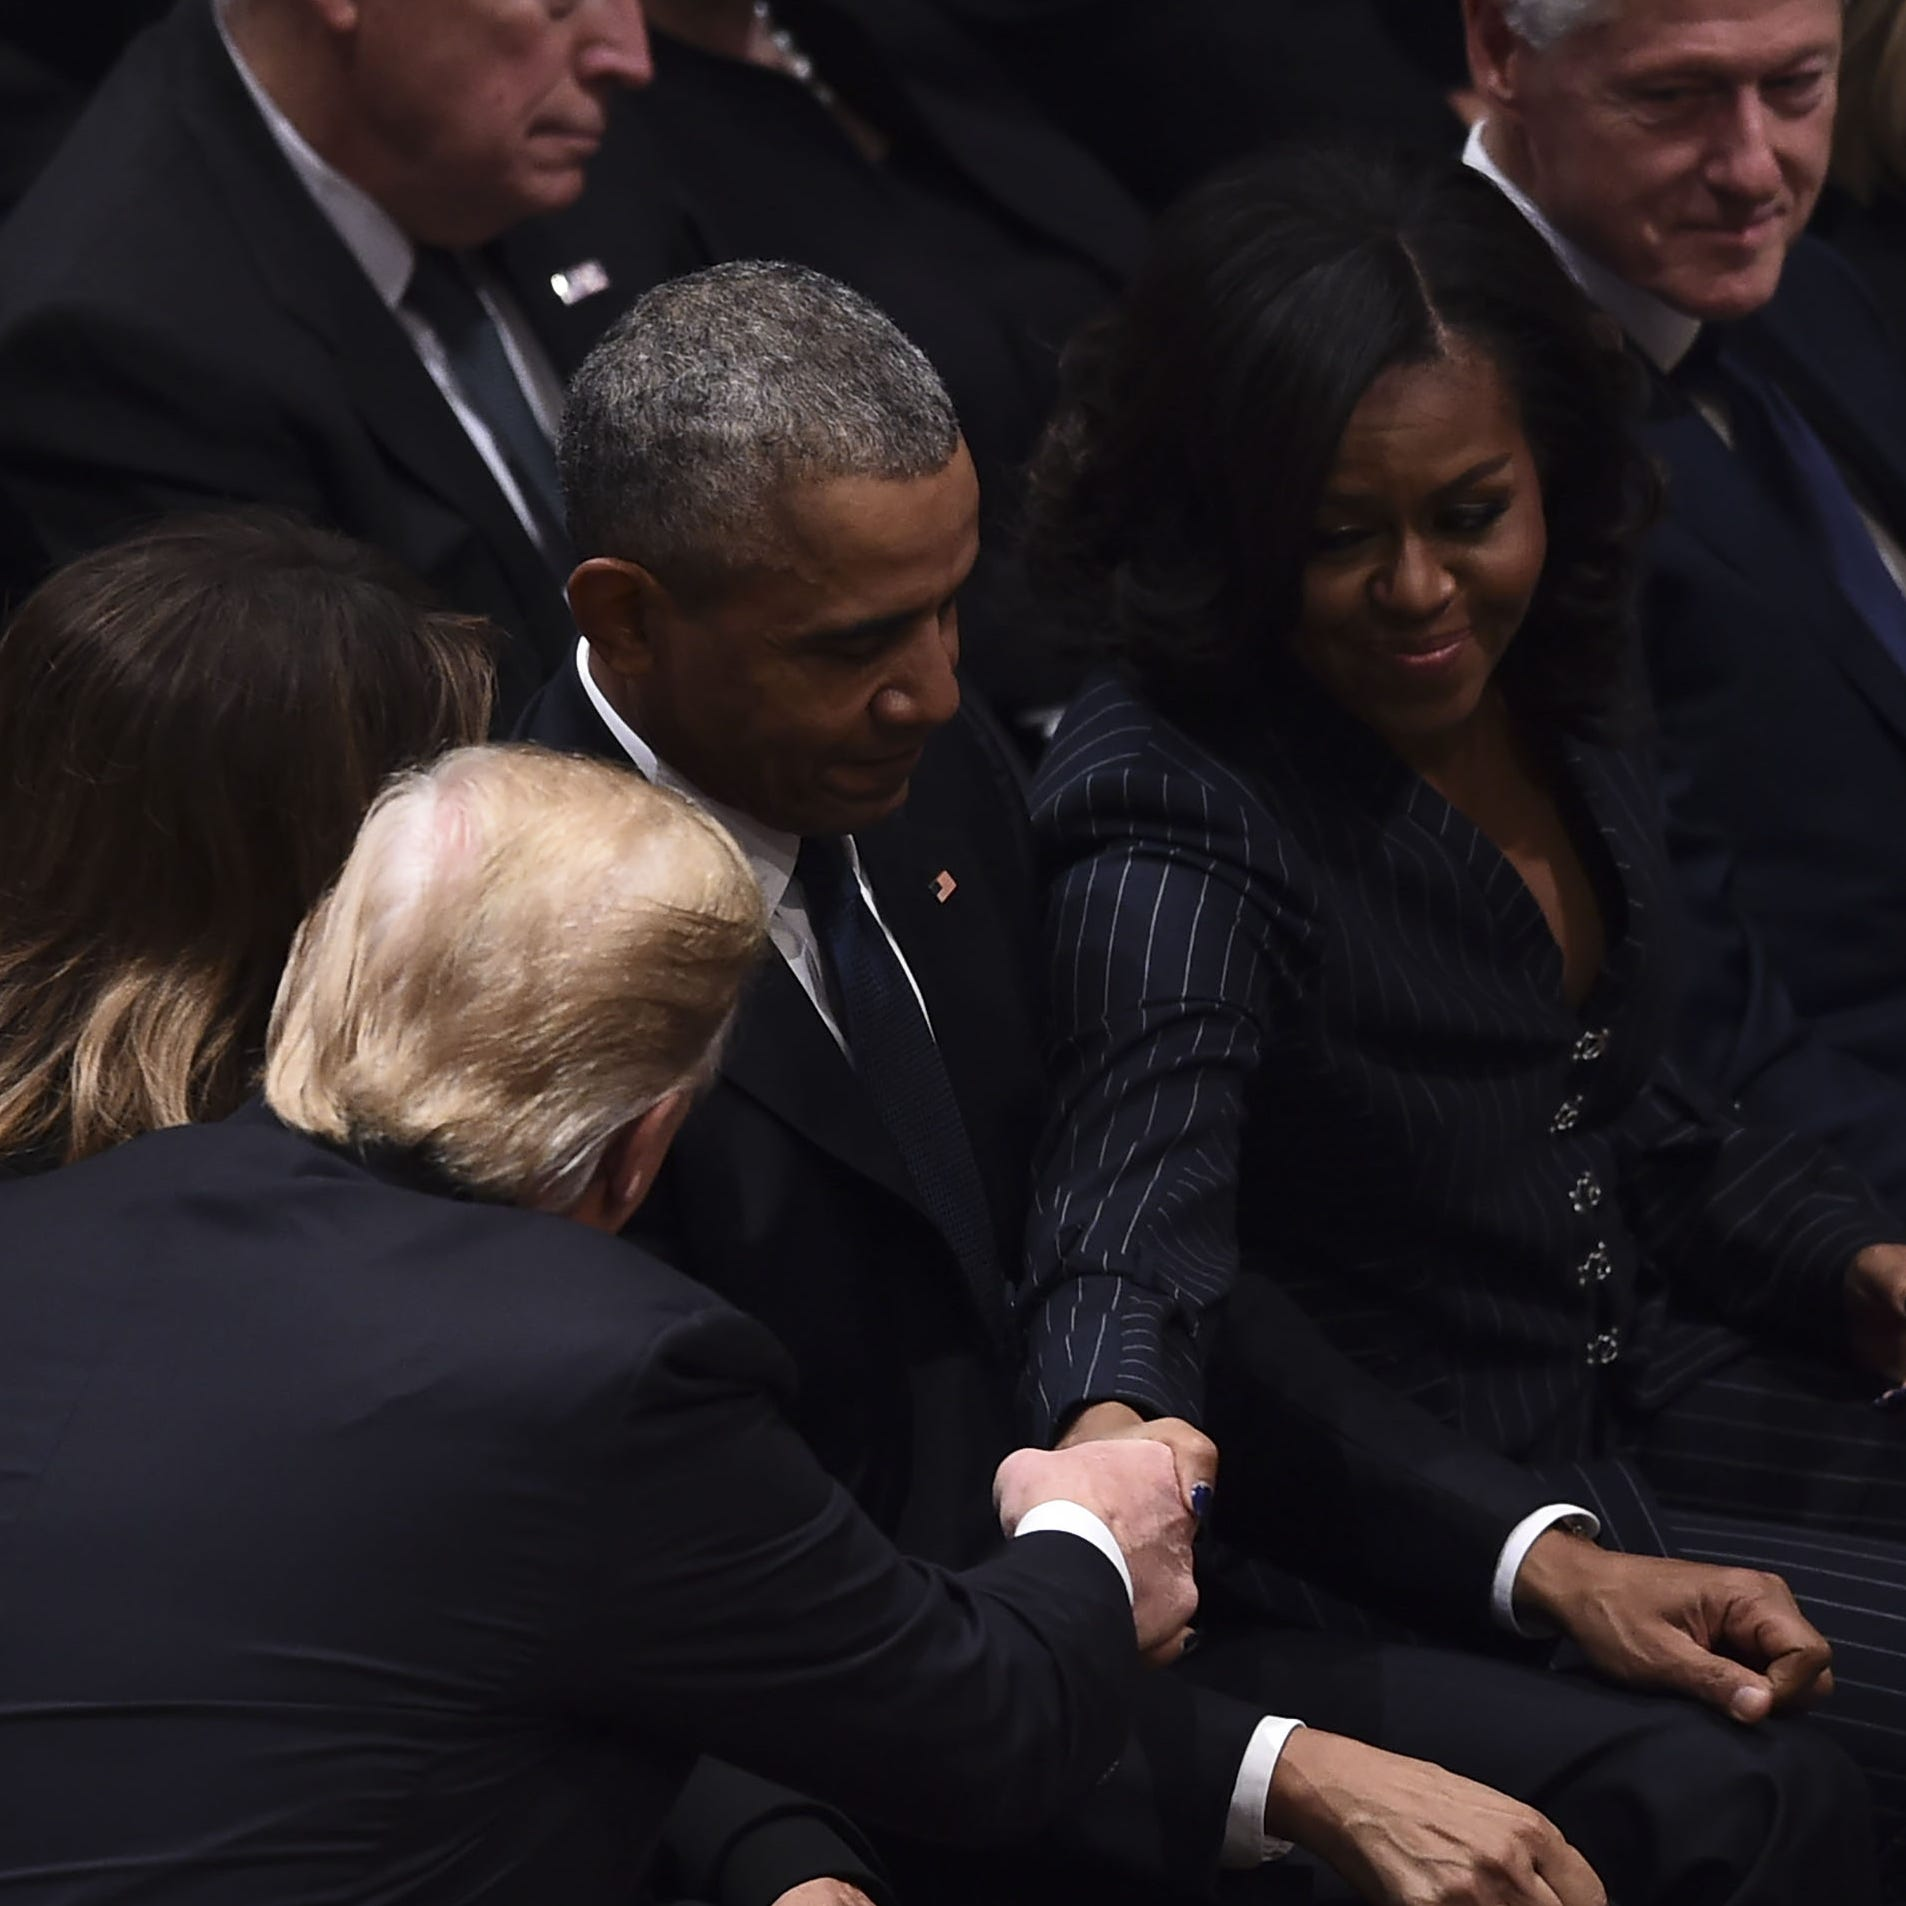 President Donald Trump shakes hands as former President Barack Obama, former first lady Michelle Obama, former President Bill Clinton, former first lady Hillary Clinton, and former President Jimmy Carter sit before the funeral service for former US President George H. W. Bush at the National Cathedral in Washington on Dec. 5, 2018.